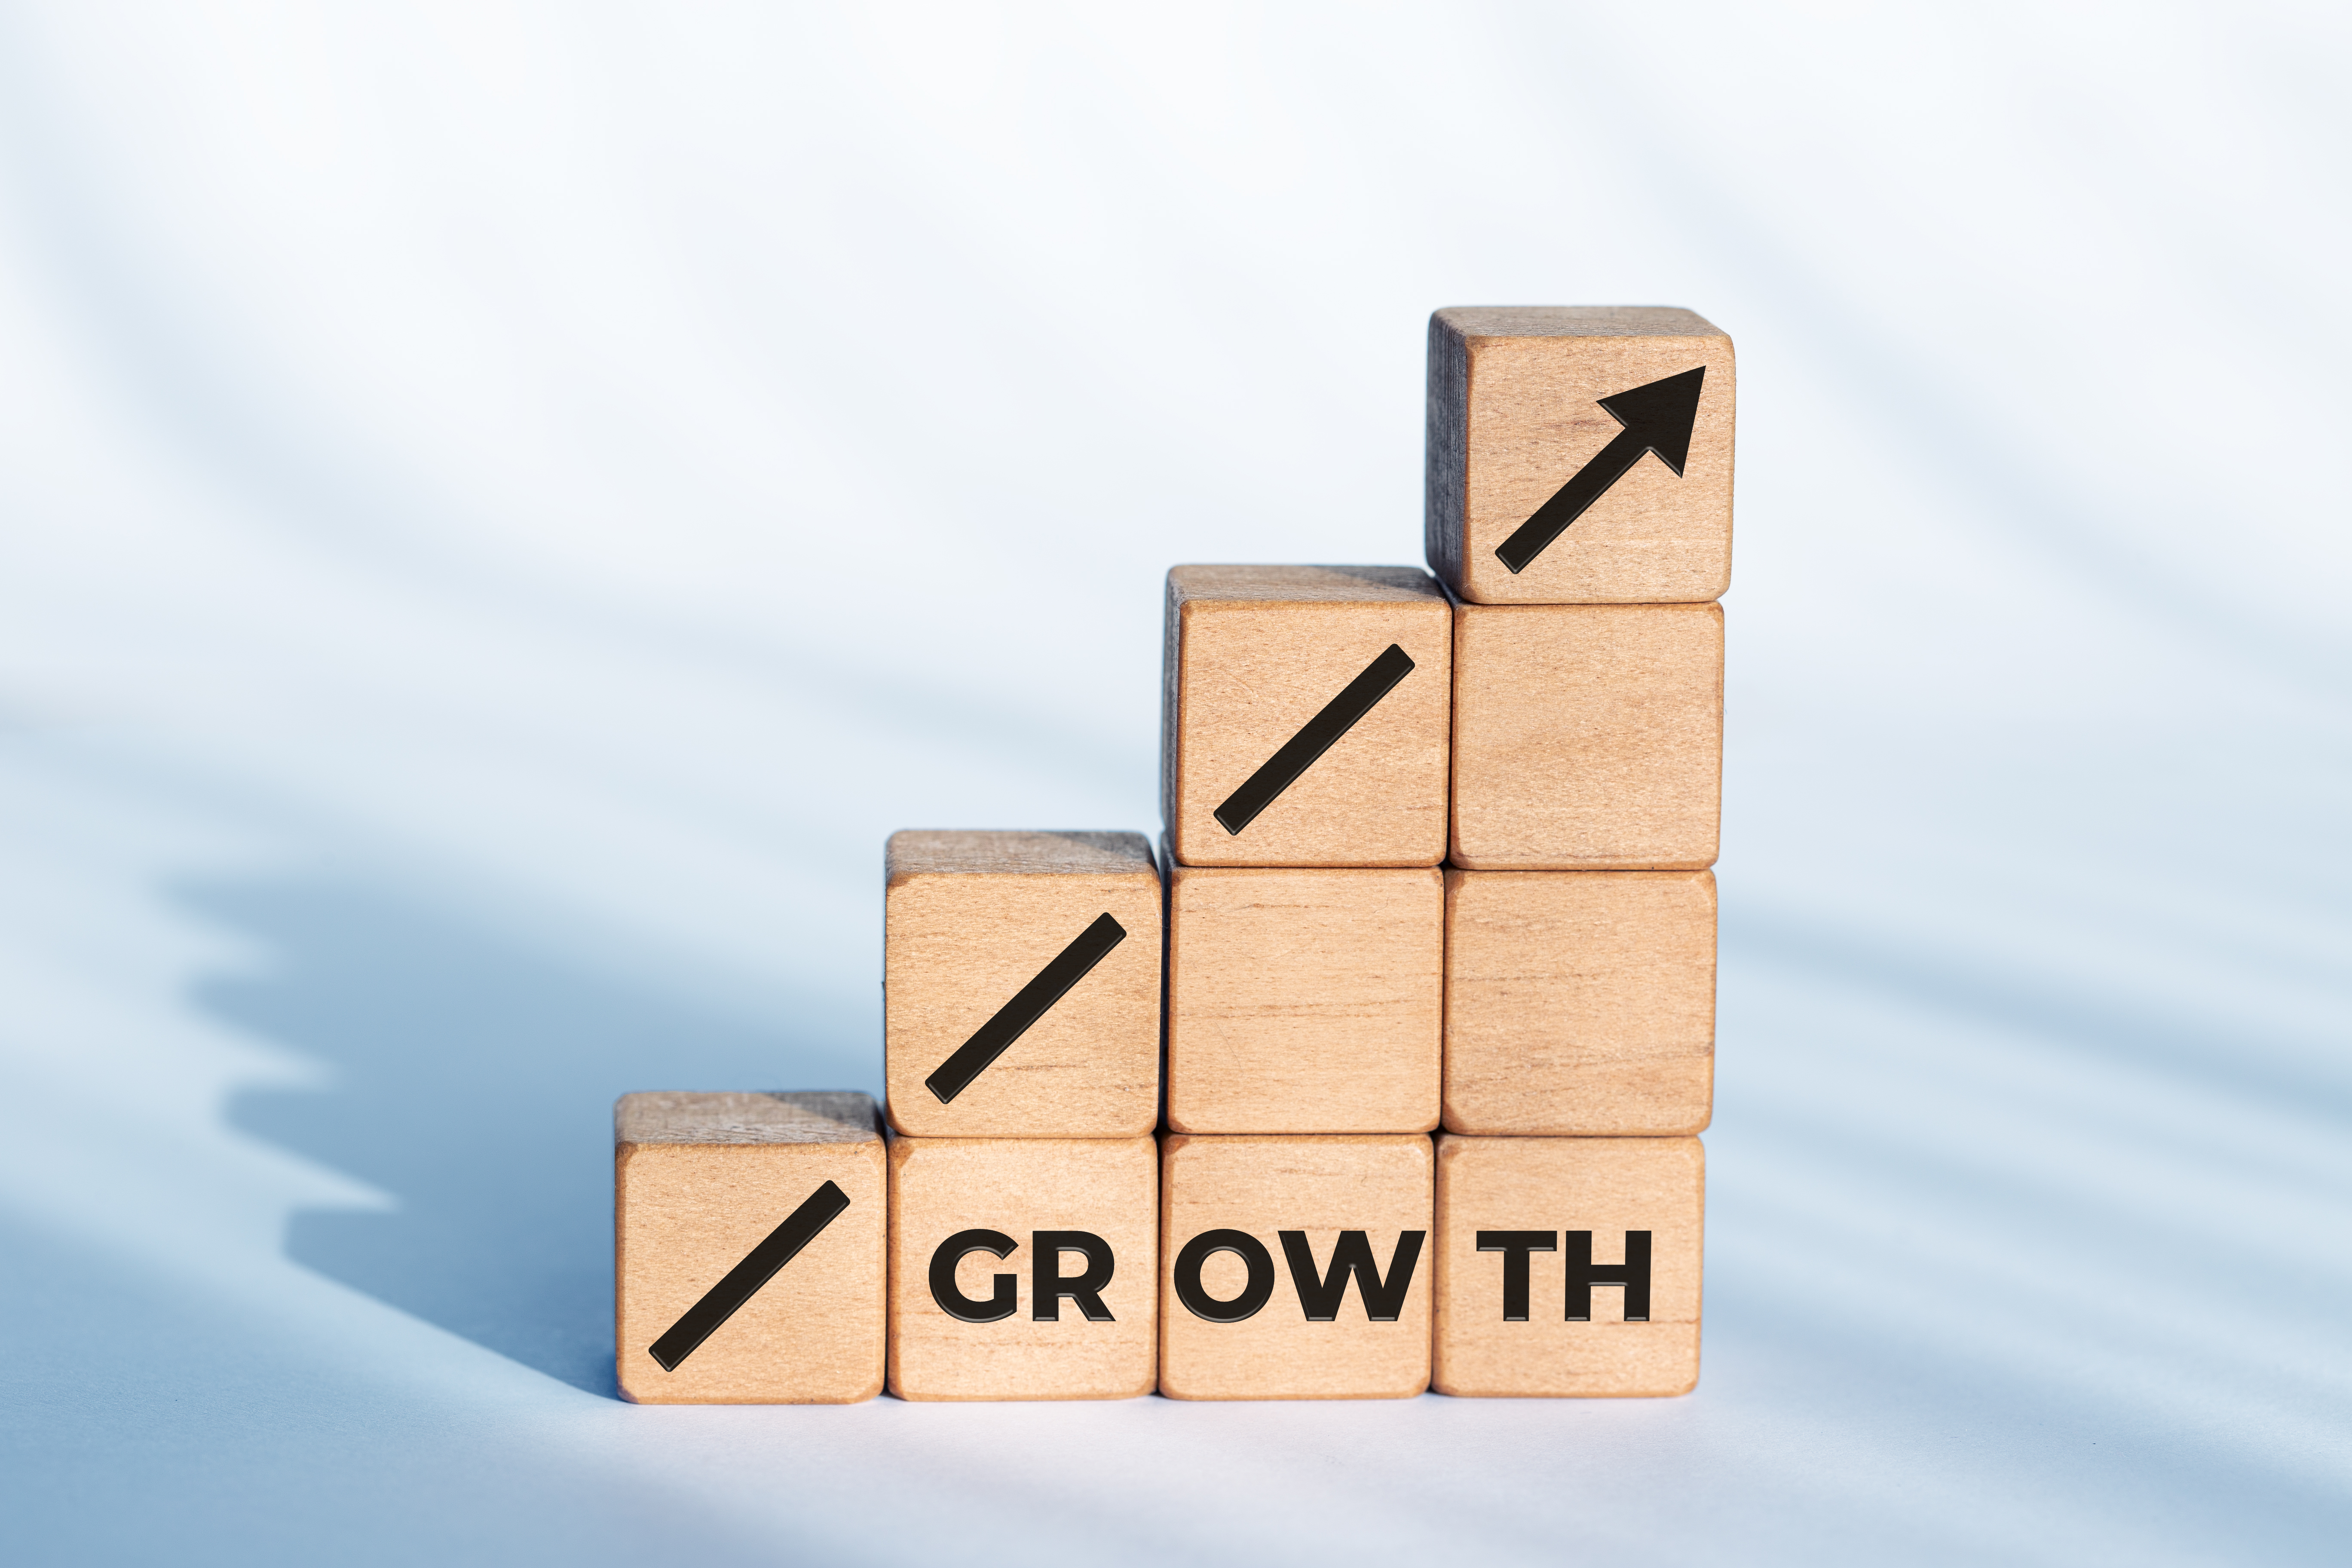 growth-or-business-concept-LK88UFH